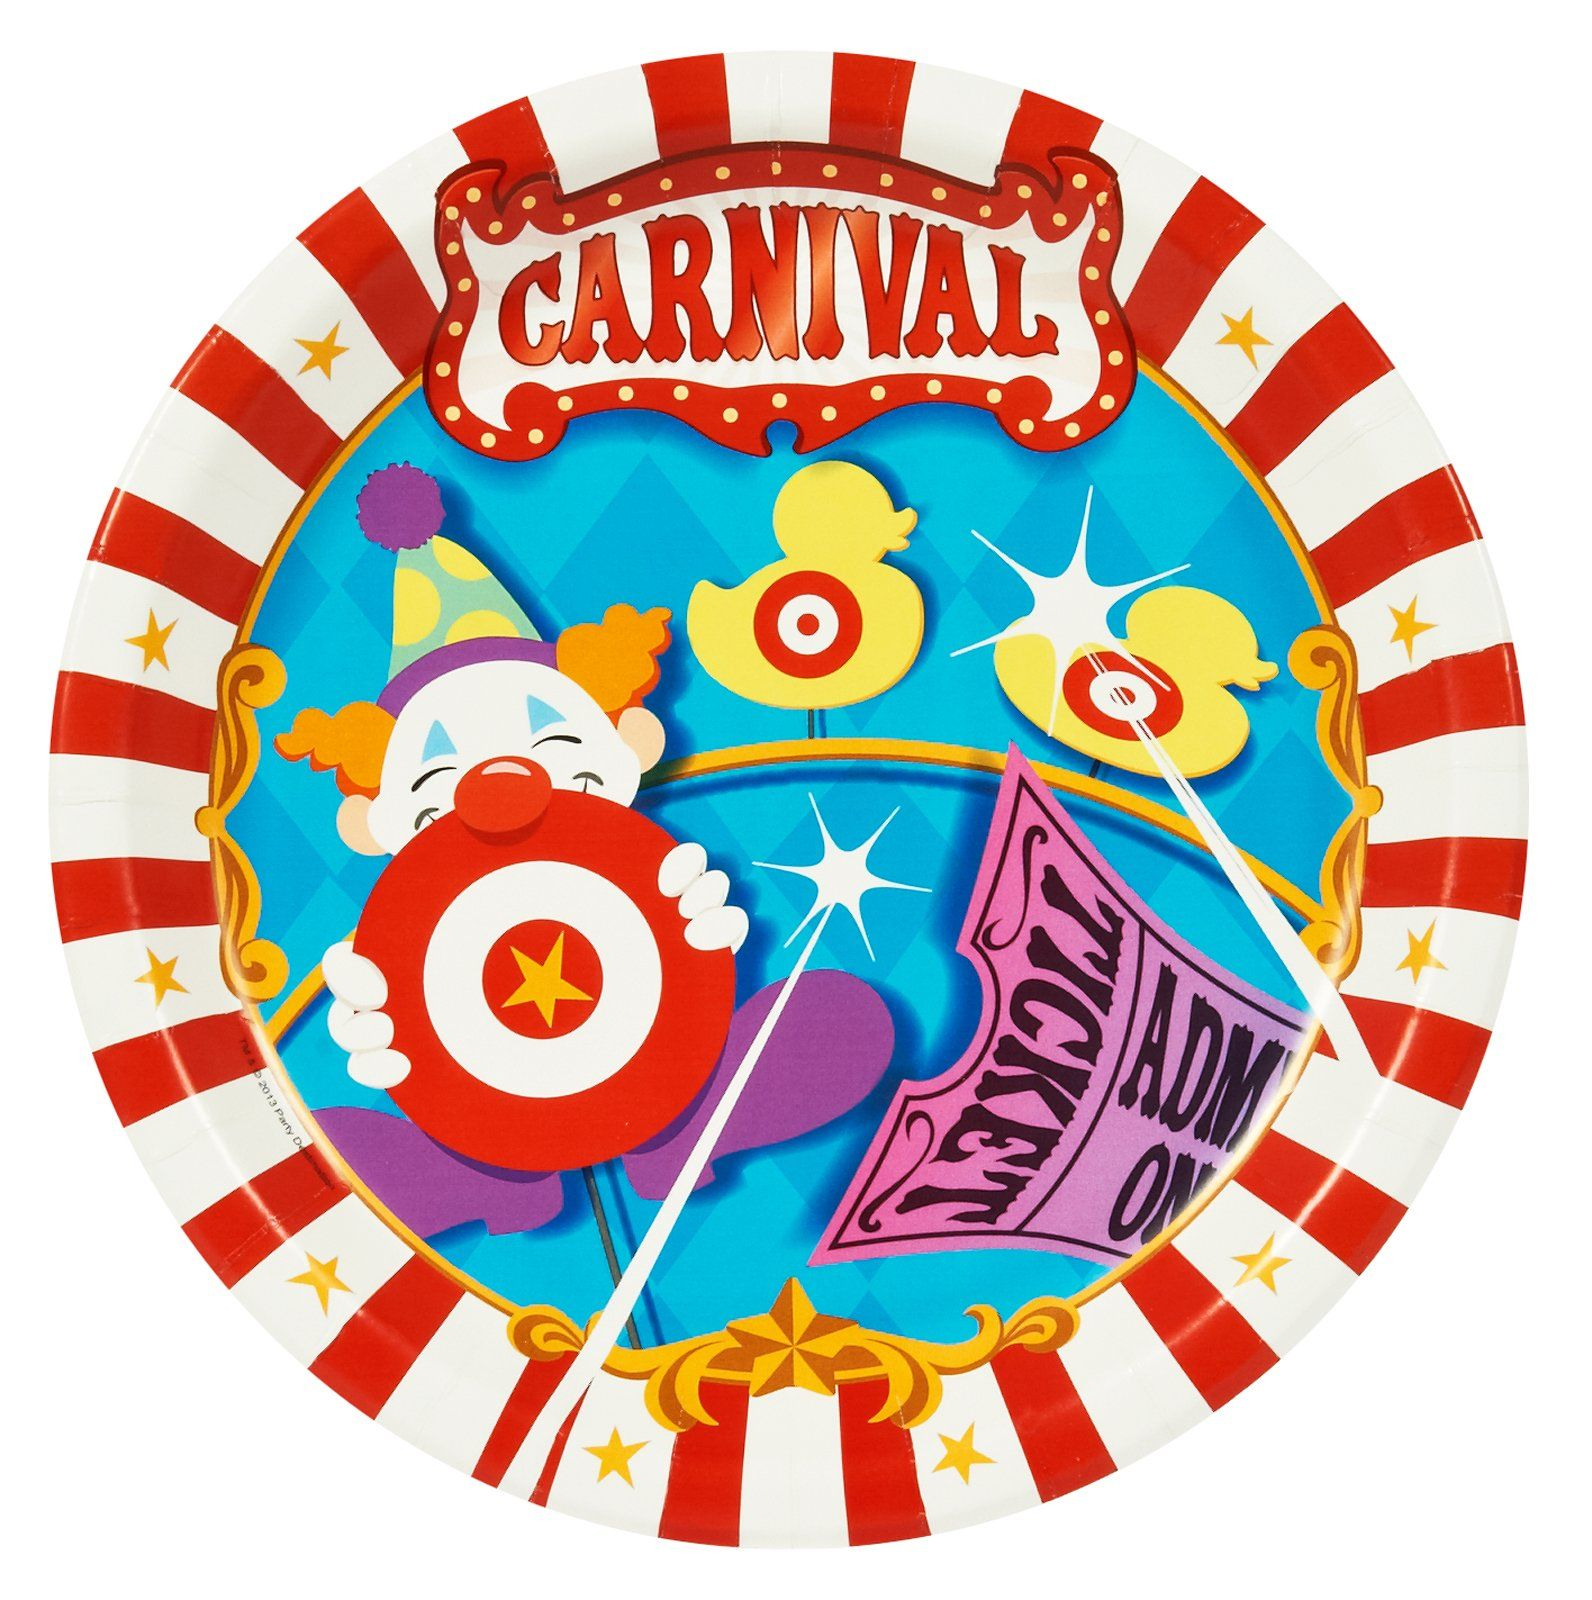 Birthday party ideas · Carnival Games Dinner Plates ...  sc 1 st  Pinterest & Carnival Games Dinner Plates | Carnival games Carnival parties and ...